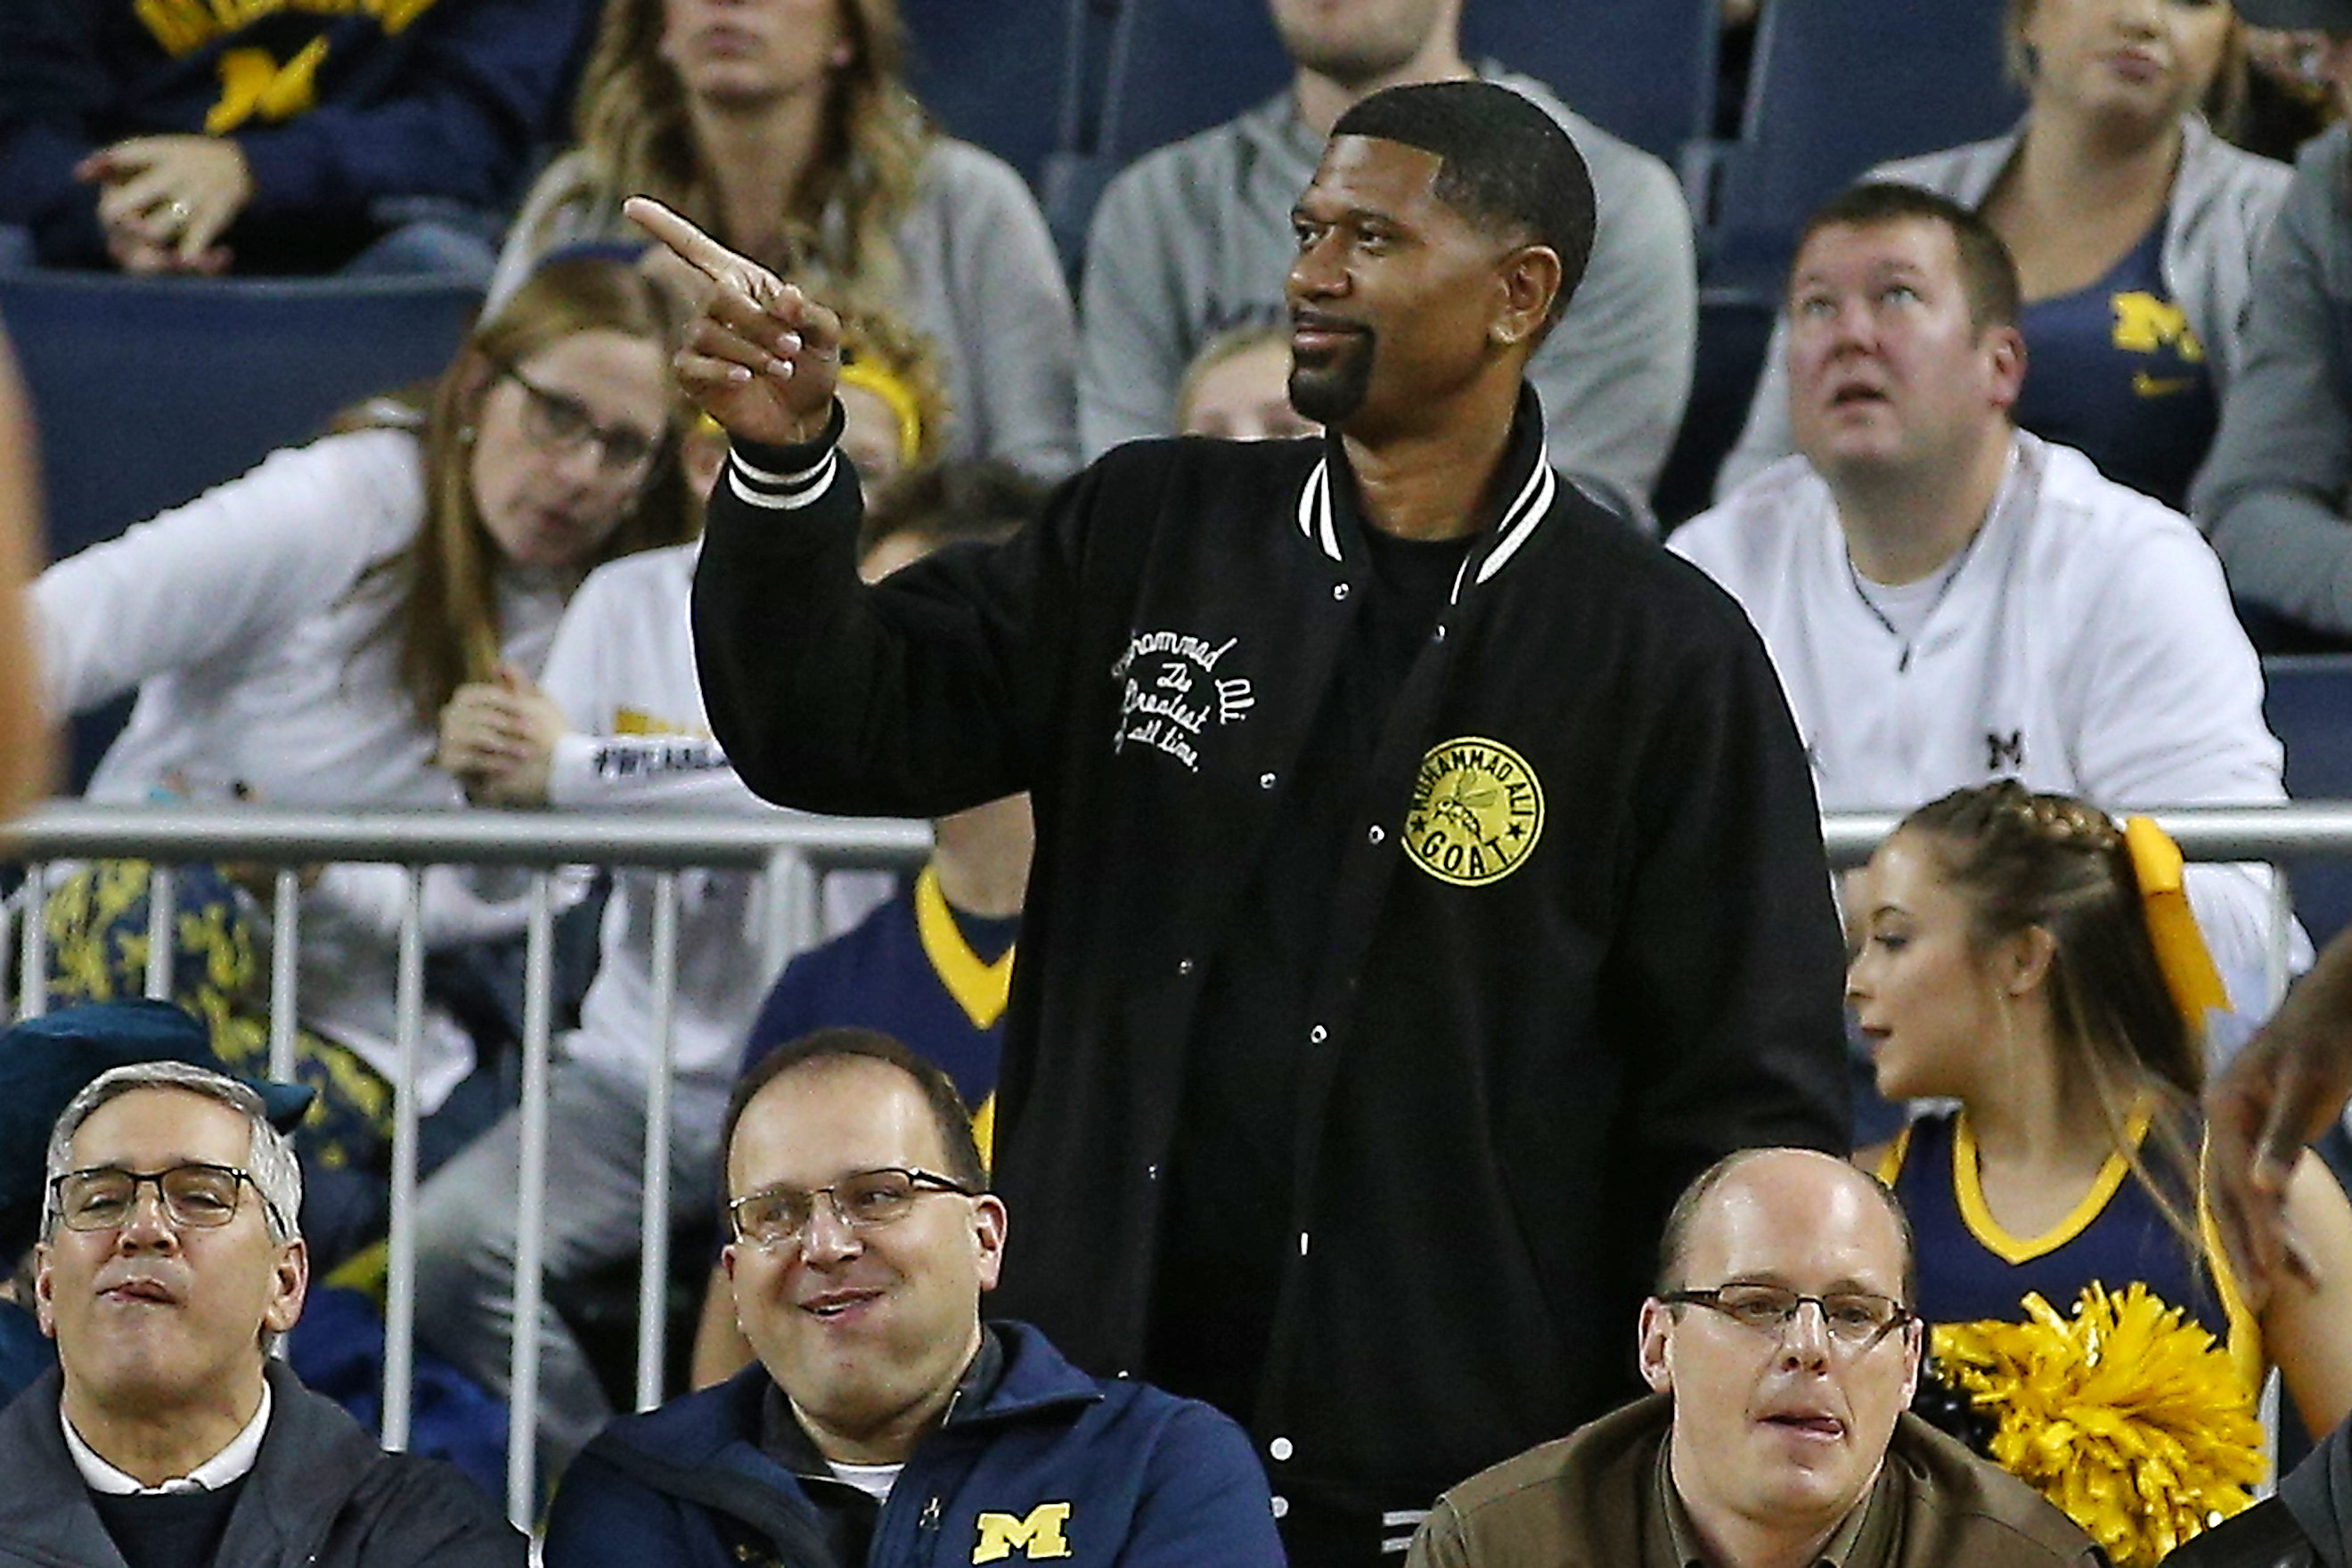 Former Michigan Wolverine Jalen Rose interested in Pistons ownership role in the future